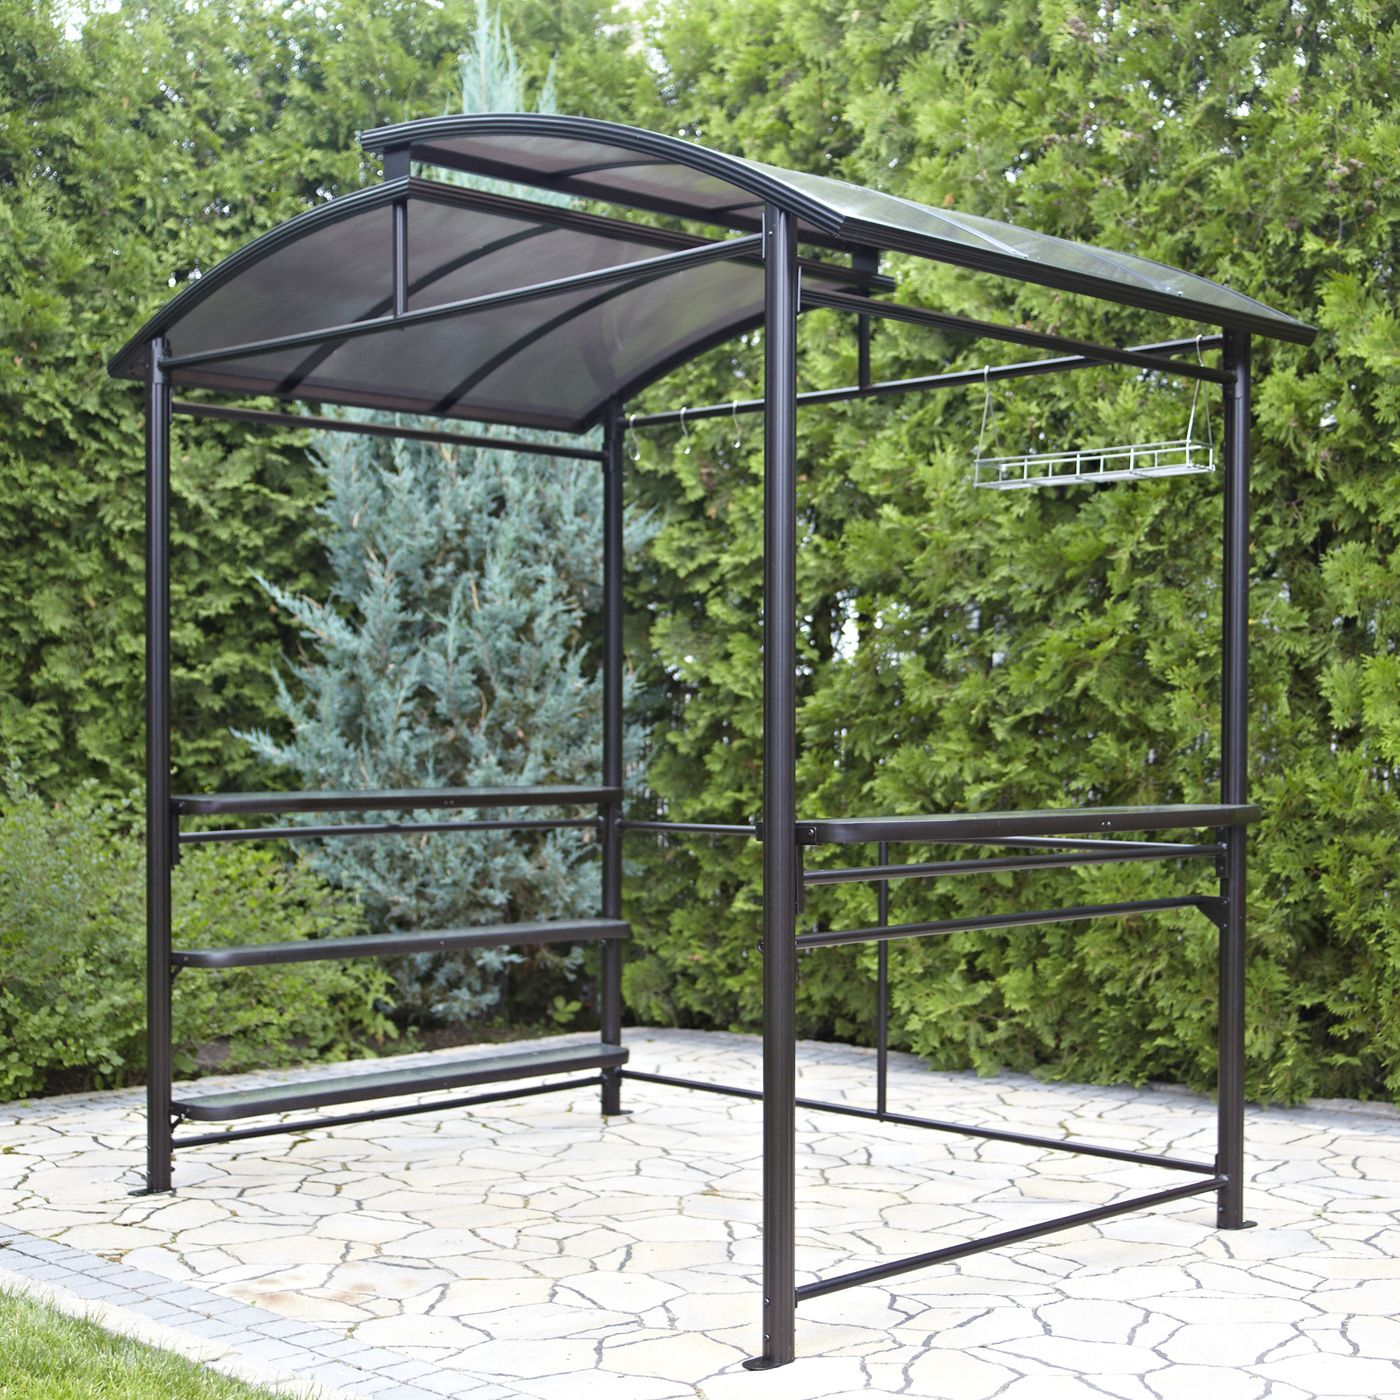 How To Make A Metal Frame Gazebos With Netting Дворики